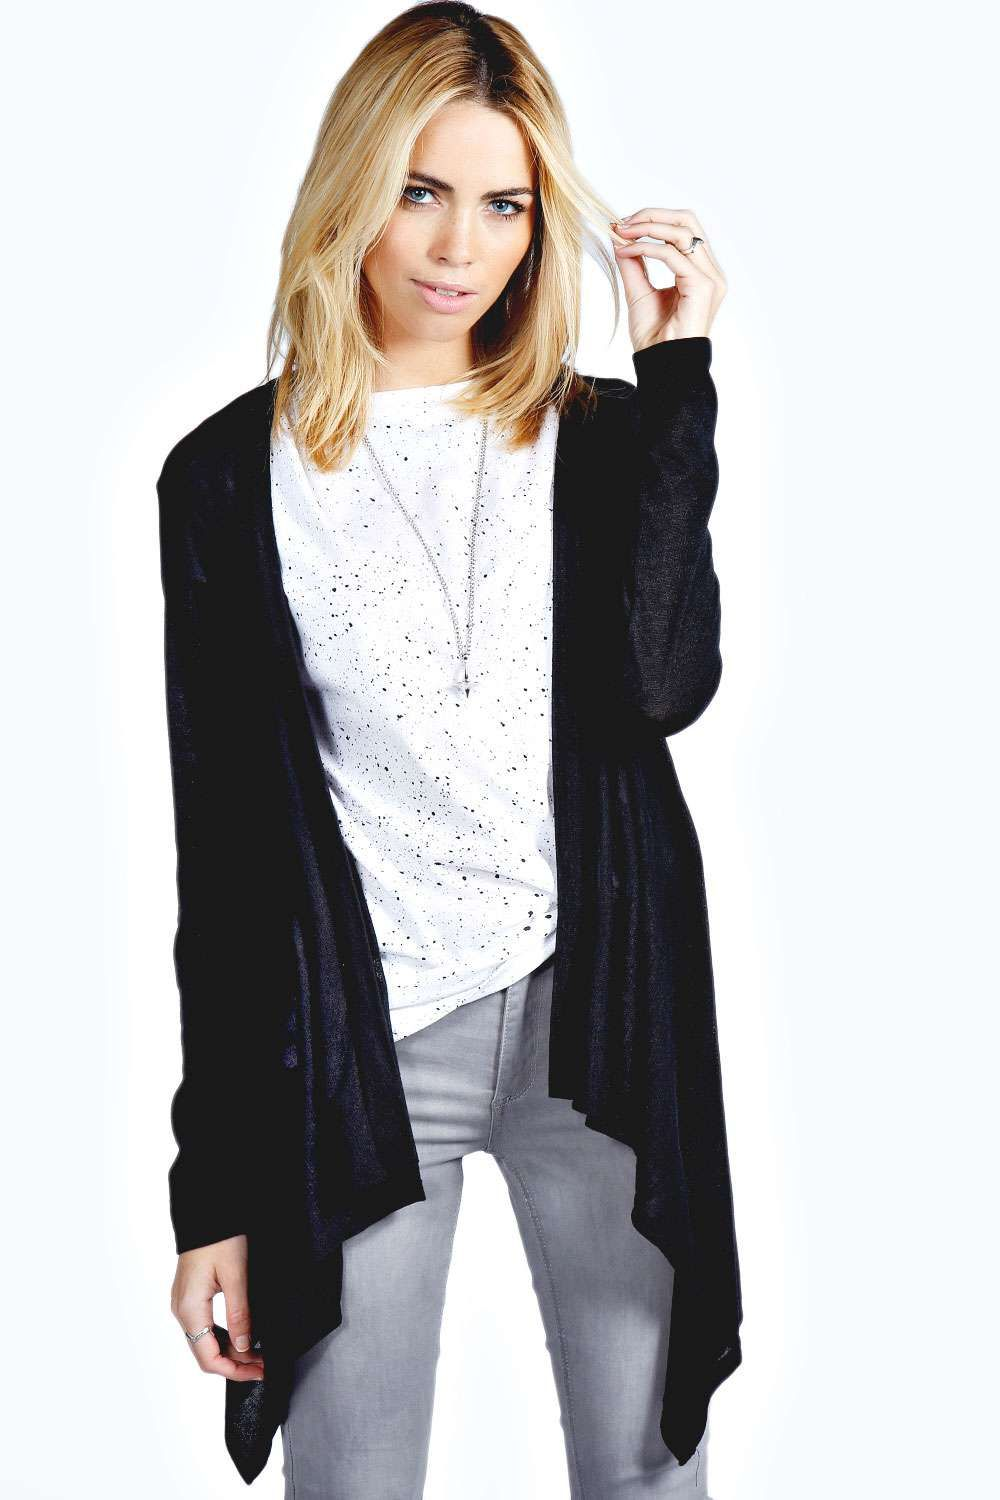 Boohoo Olivia Waterfall Cardigan - on Vein - getvein.com | Jumpers ...